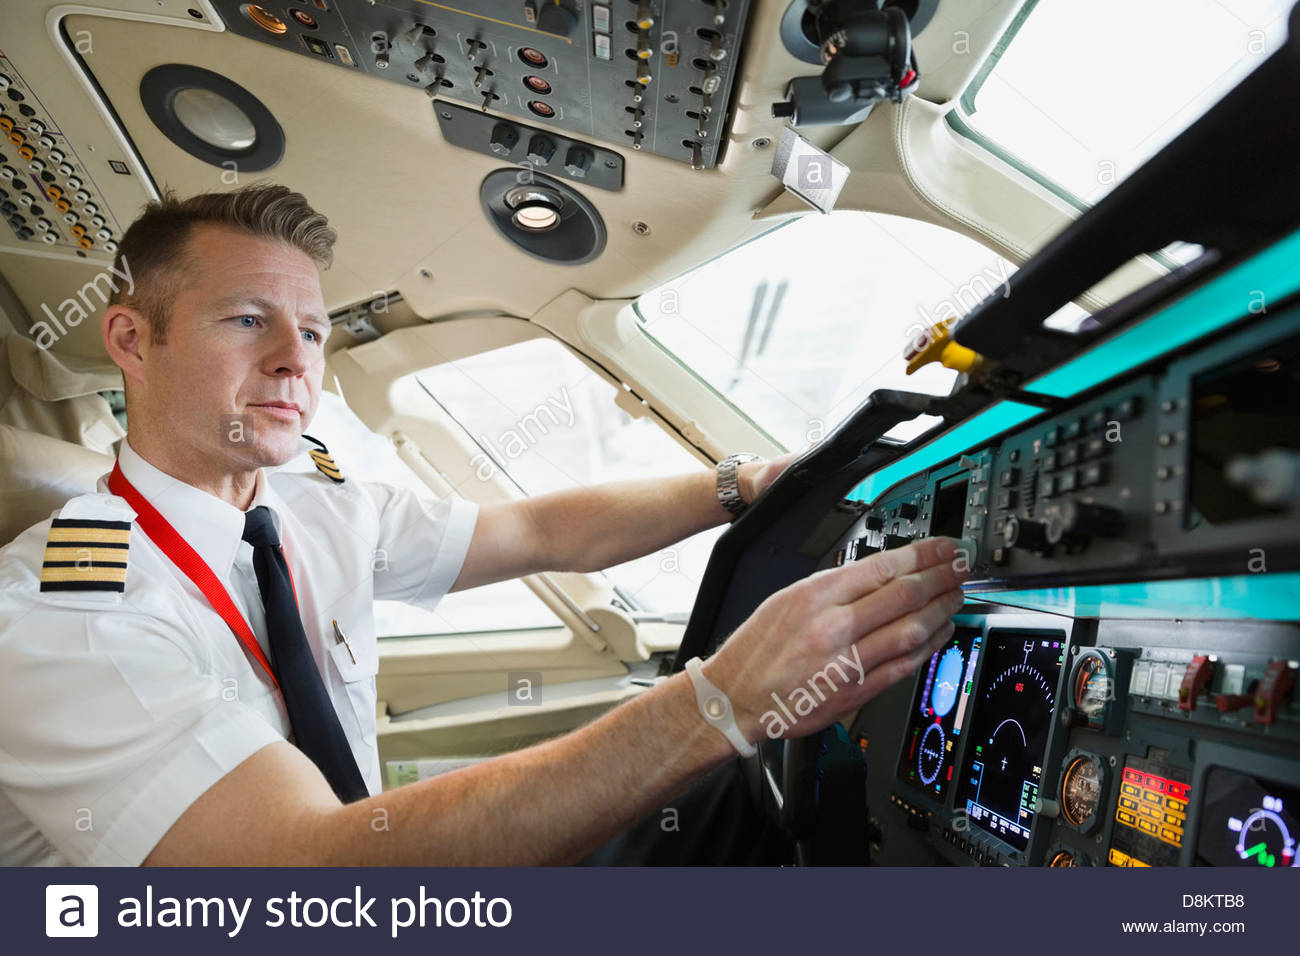 Male pilot checking control panel in airplane cockpit - Stock Image